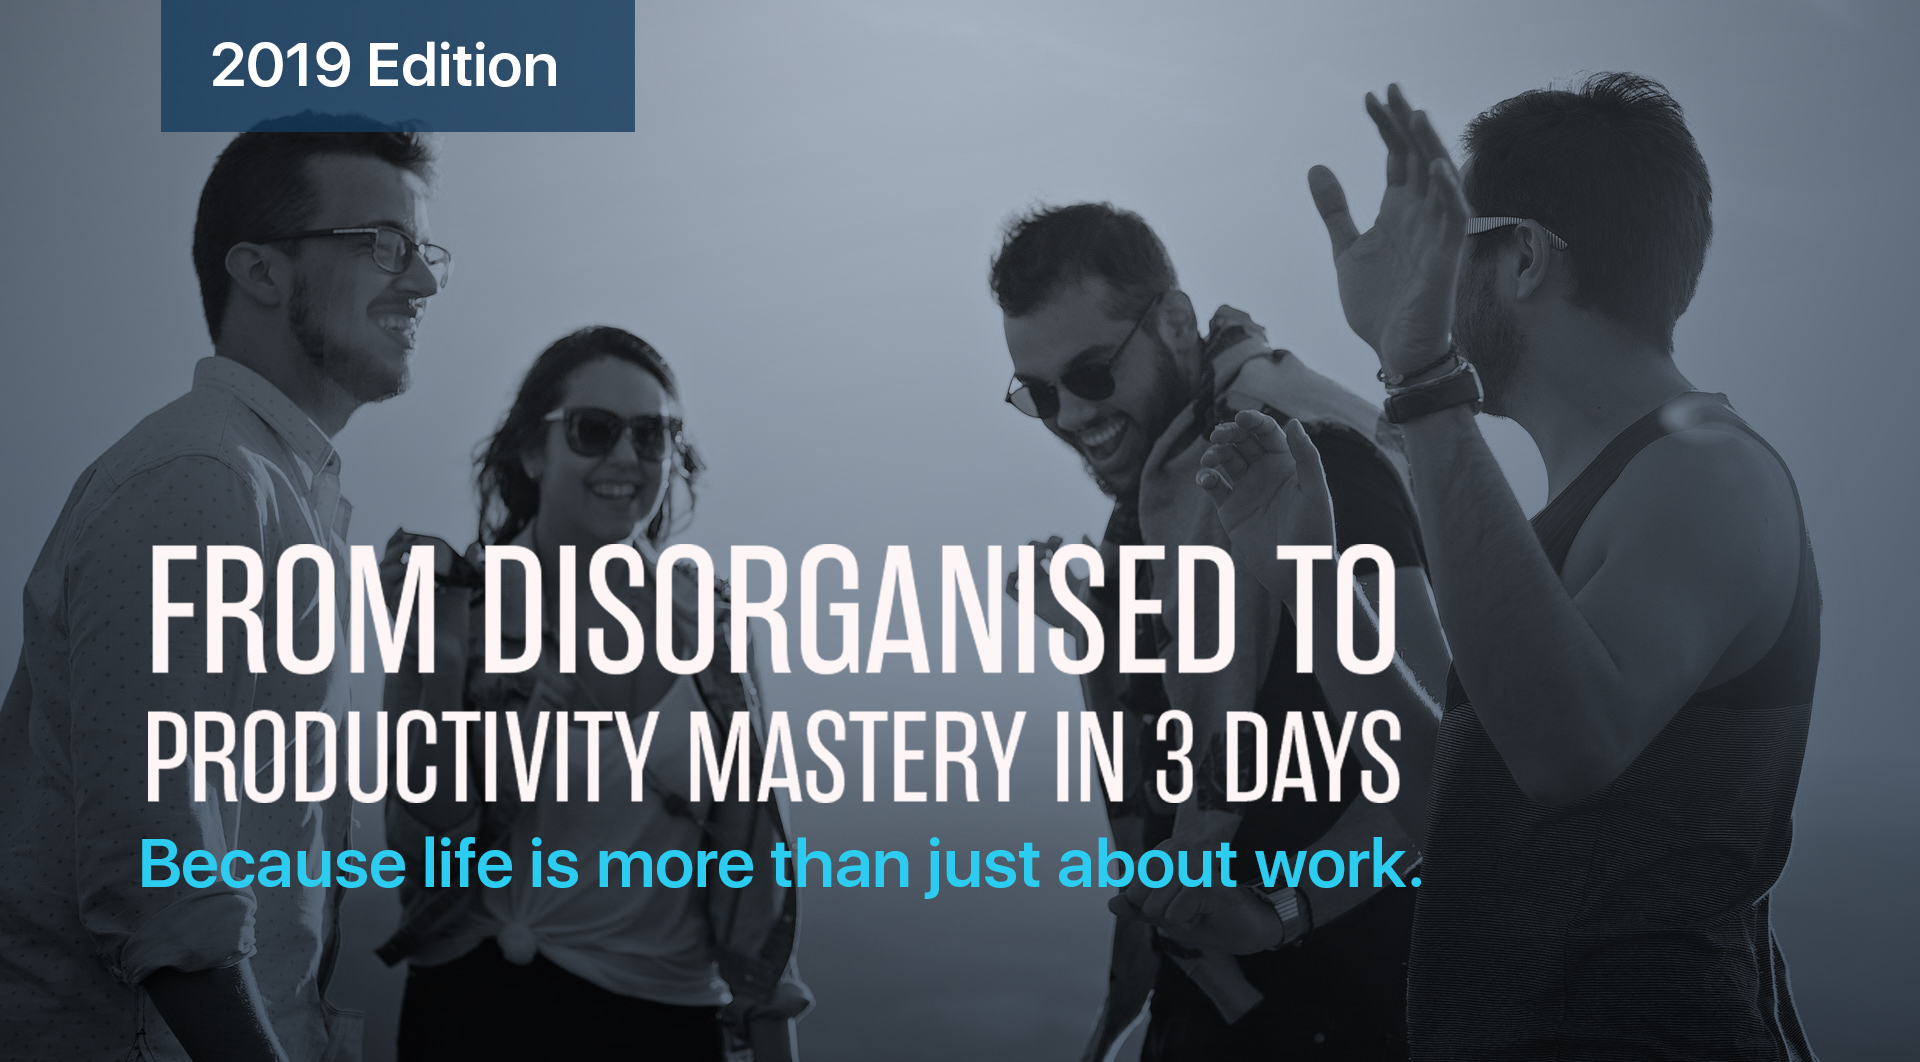 From Disorganised To Productivity Mastery in 3 Days